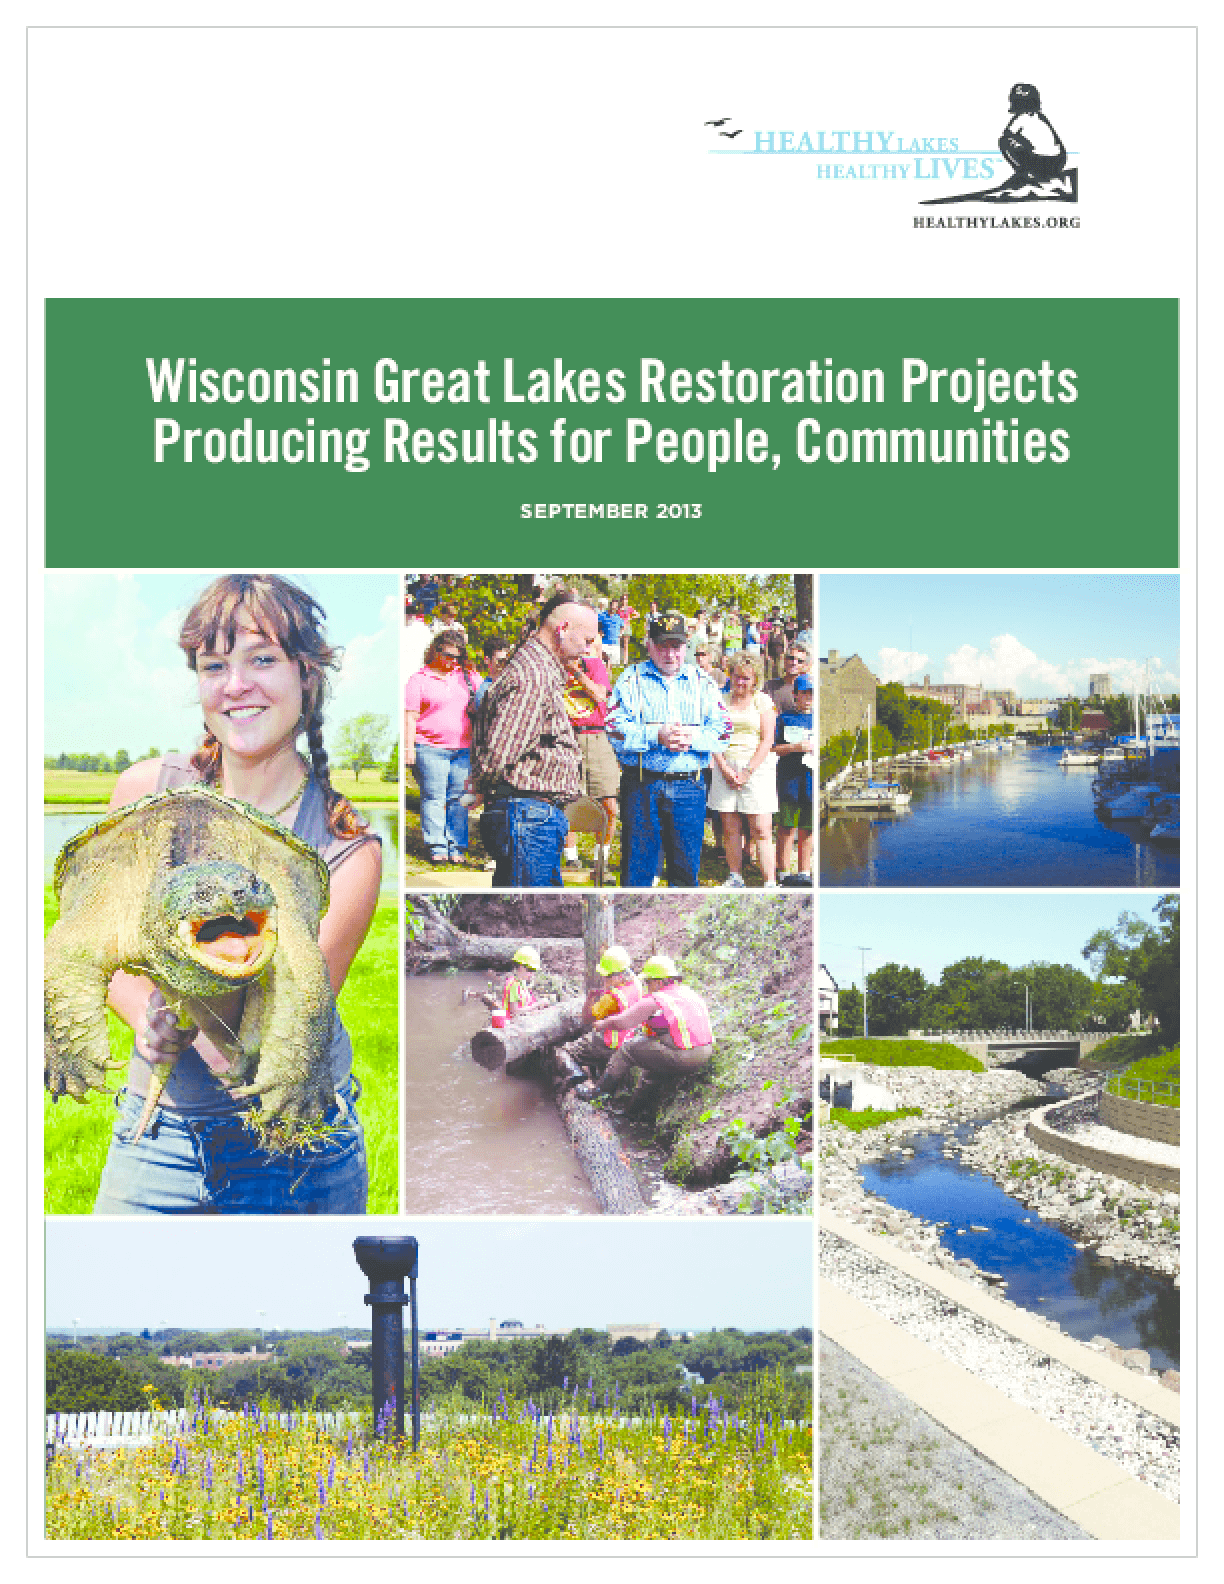 Wisconsin Great Lakes Restoration Projects: Producing Results for People, Communities